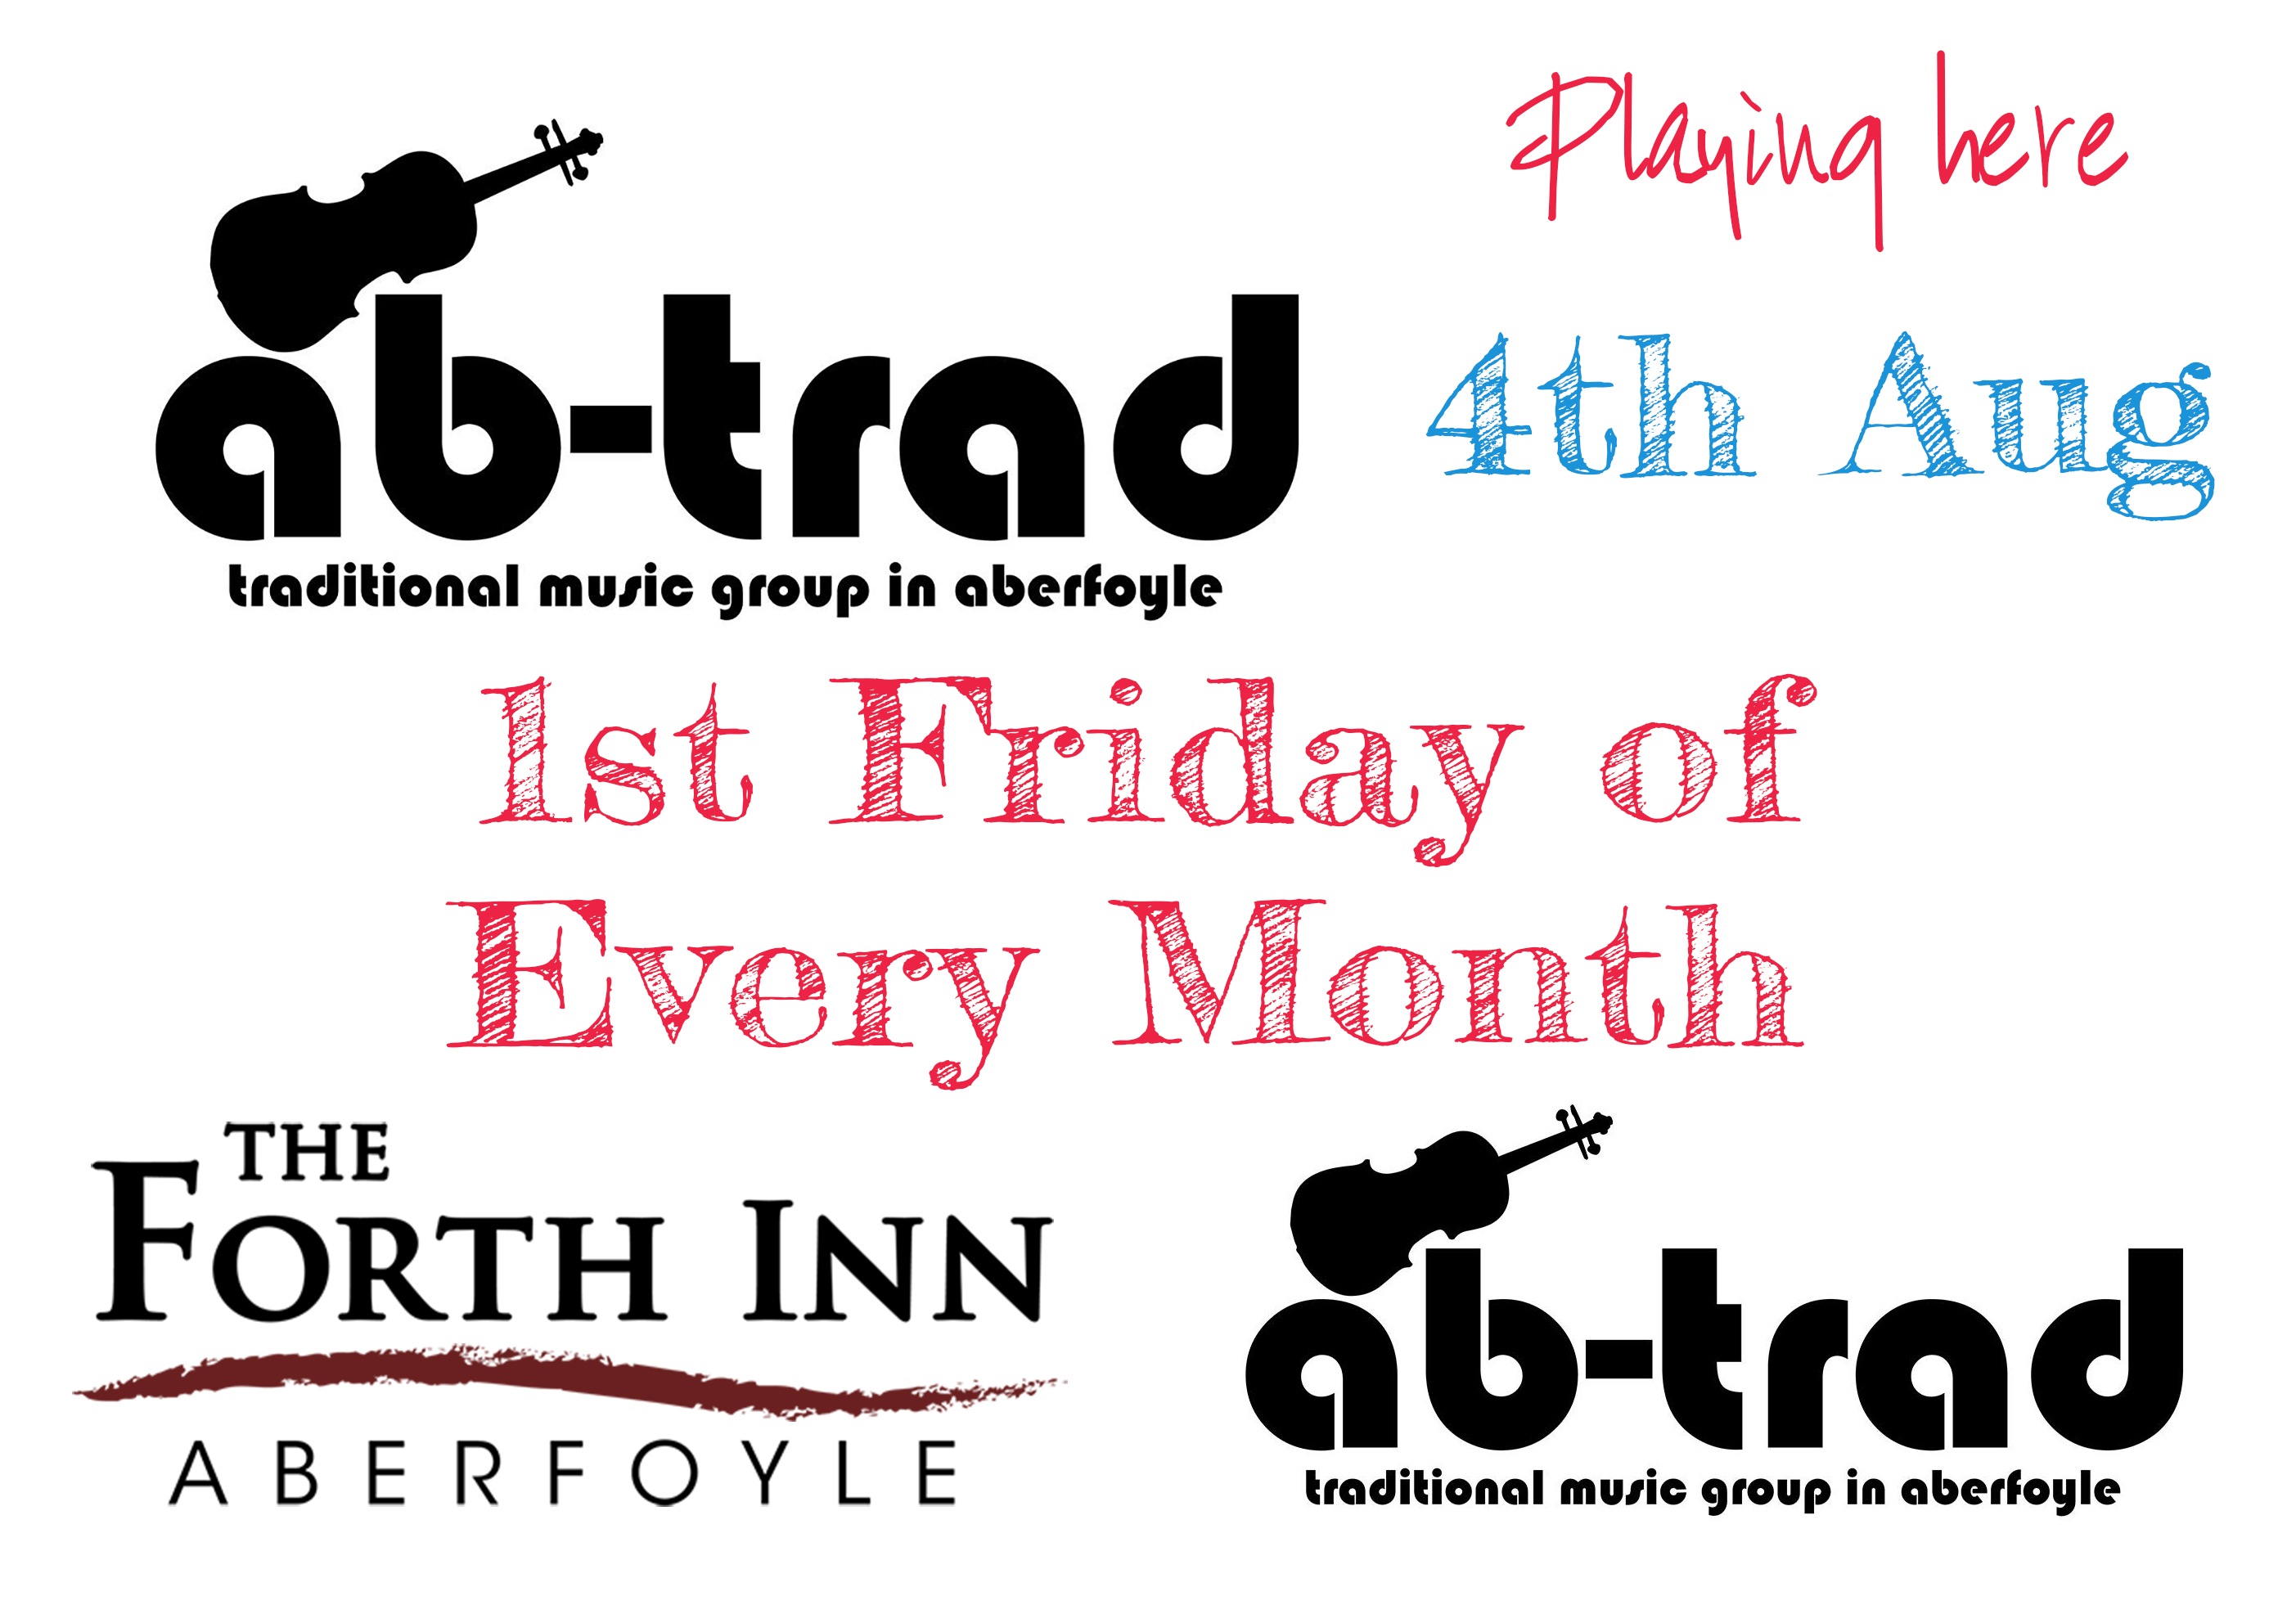 Ab-Trad Local Live Music